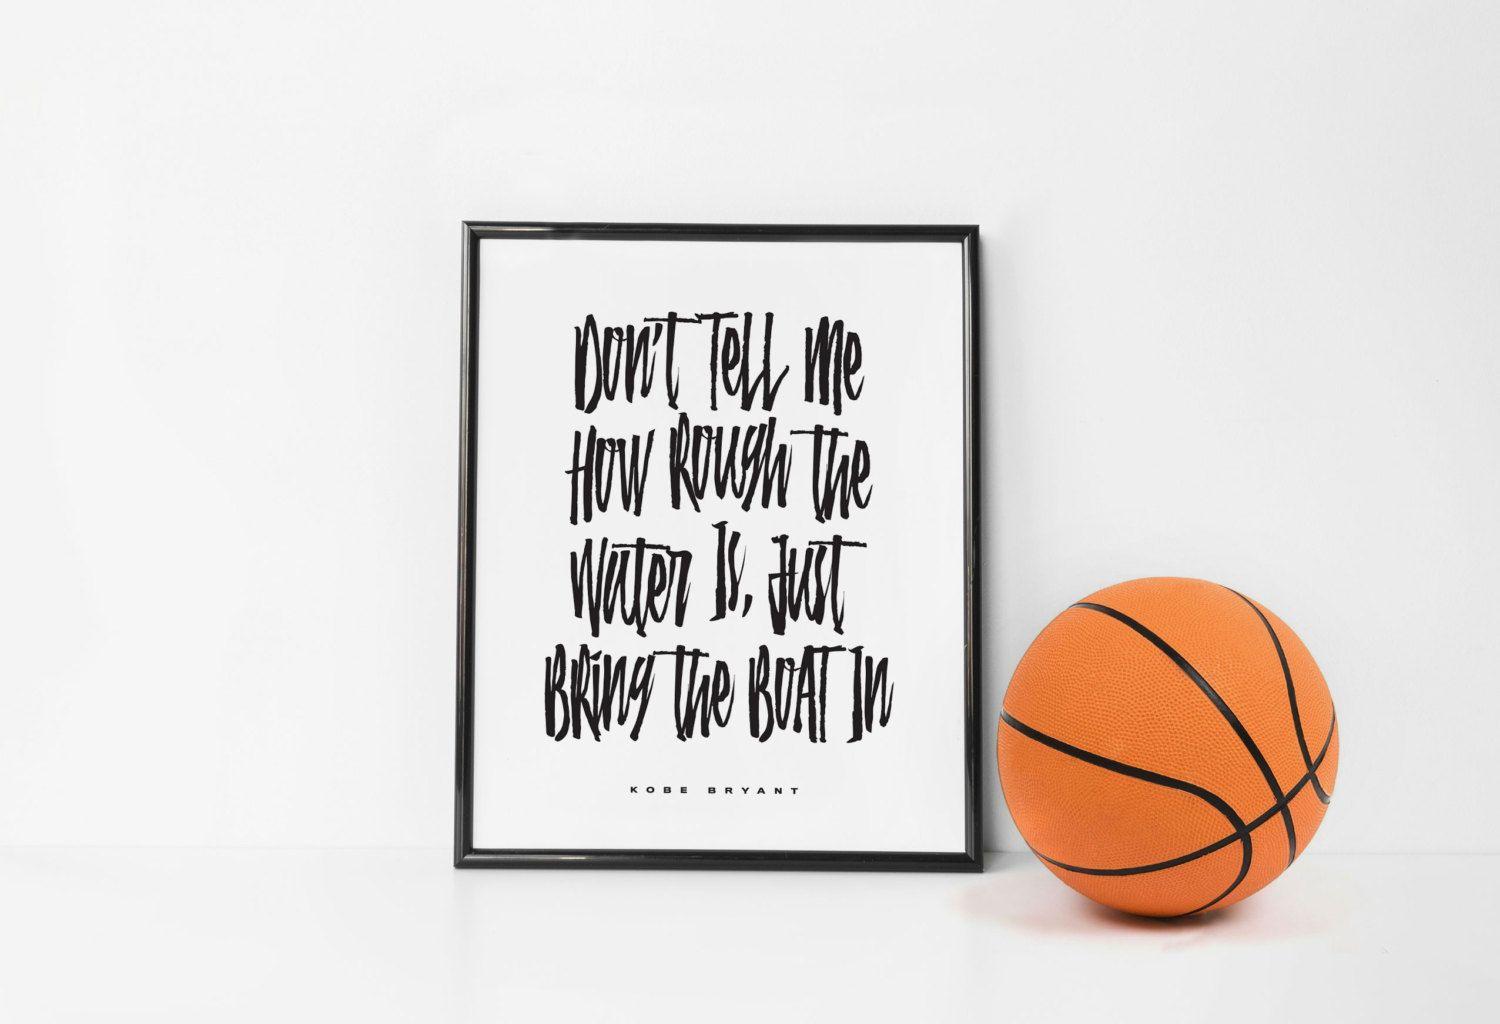 Kobe Bryant inspiration quote printable typography poster • typography print • wall art • design • instant download by hsuperdesigns on Etsy